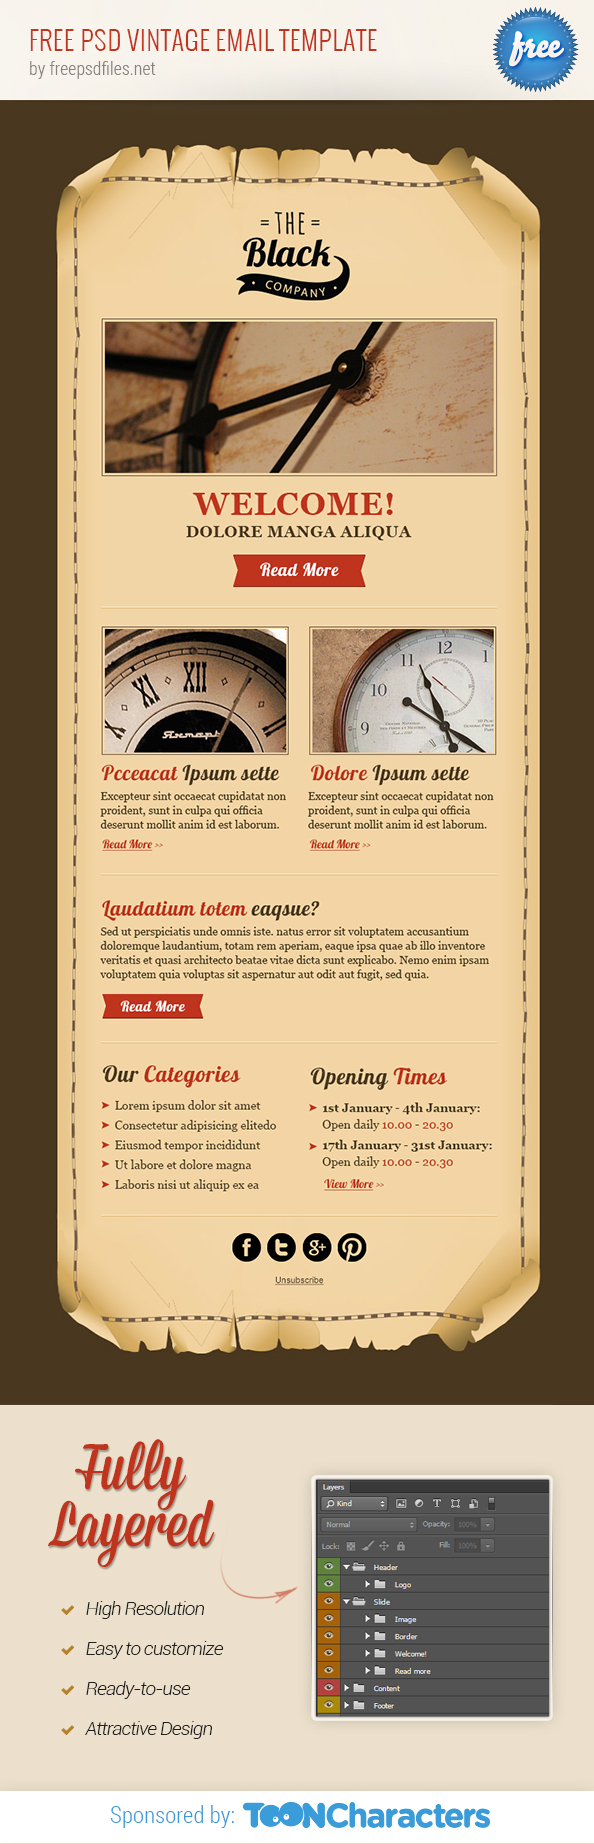 Free PSD Vintage Email Template